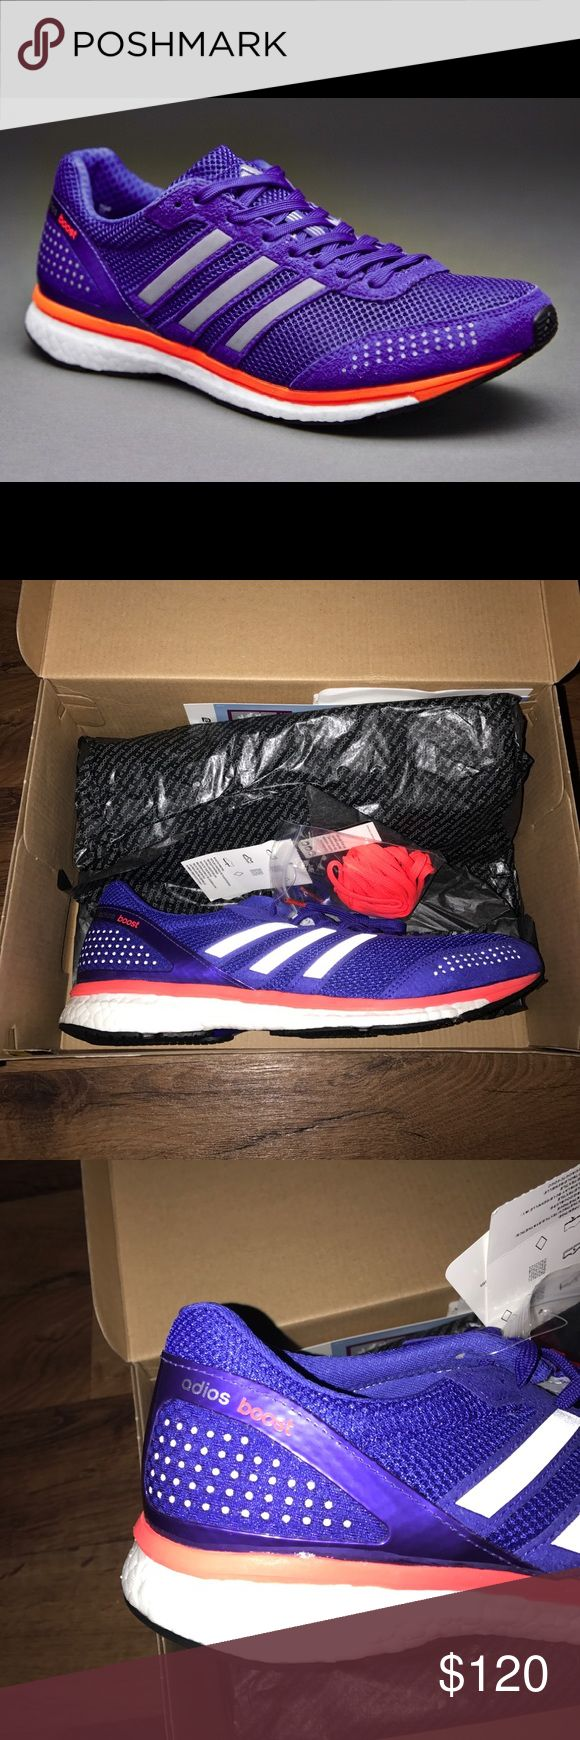 New 11 Adidas Adios Boost 2 Running Shoes Purple New Adidas Shoes Athletic Shoes